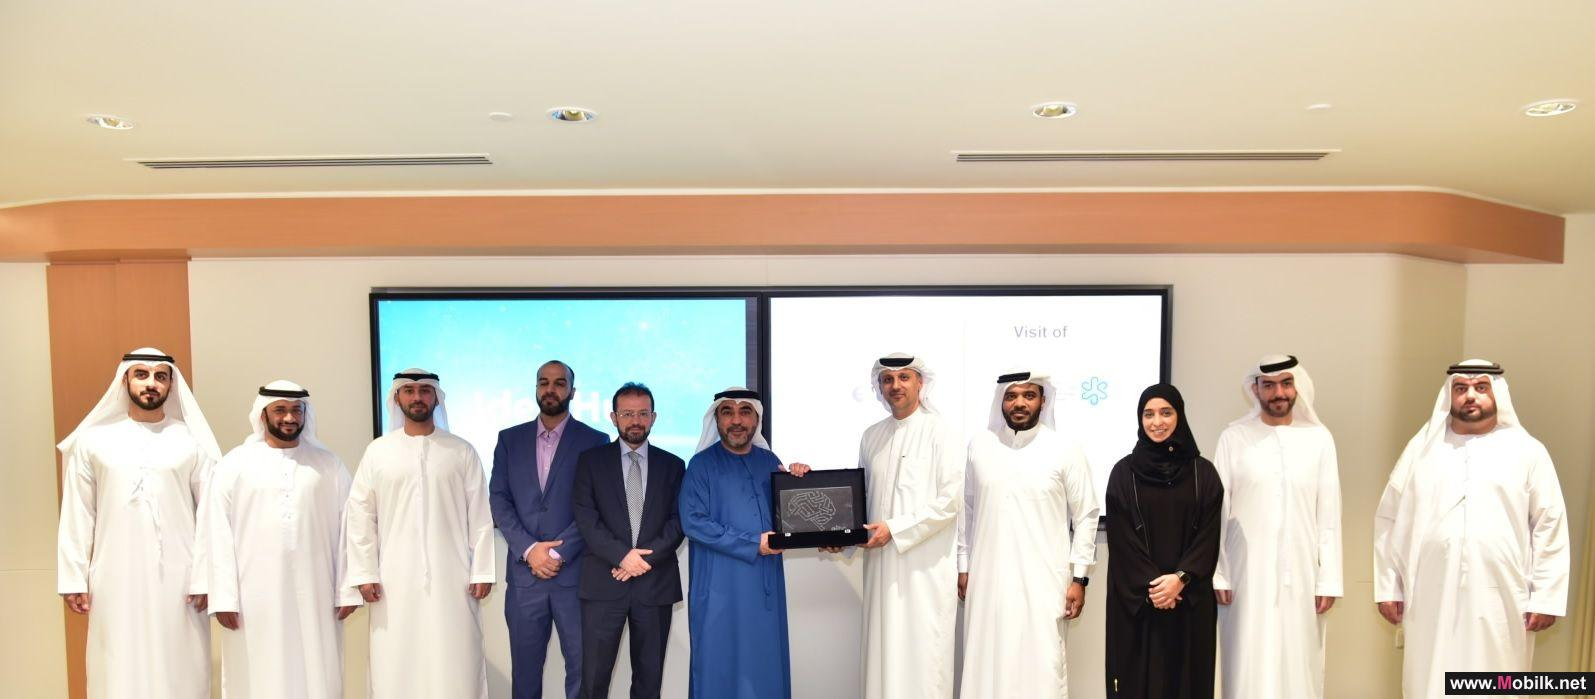 du Presents the Future of ICT to Sharjah Research Technology &